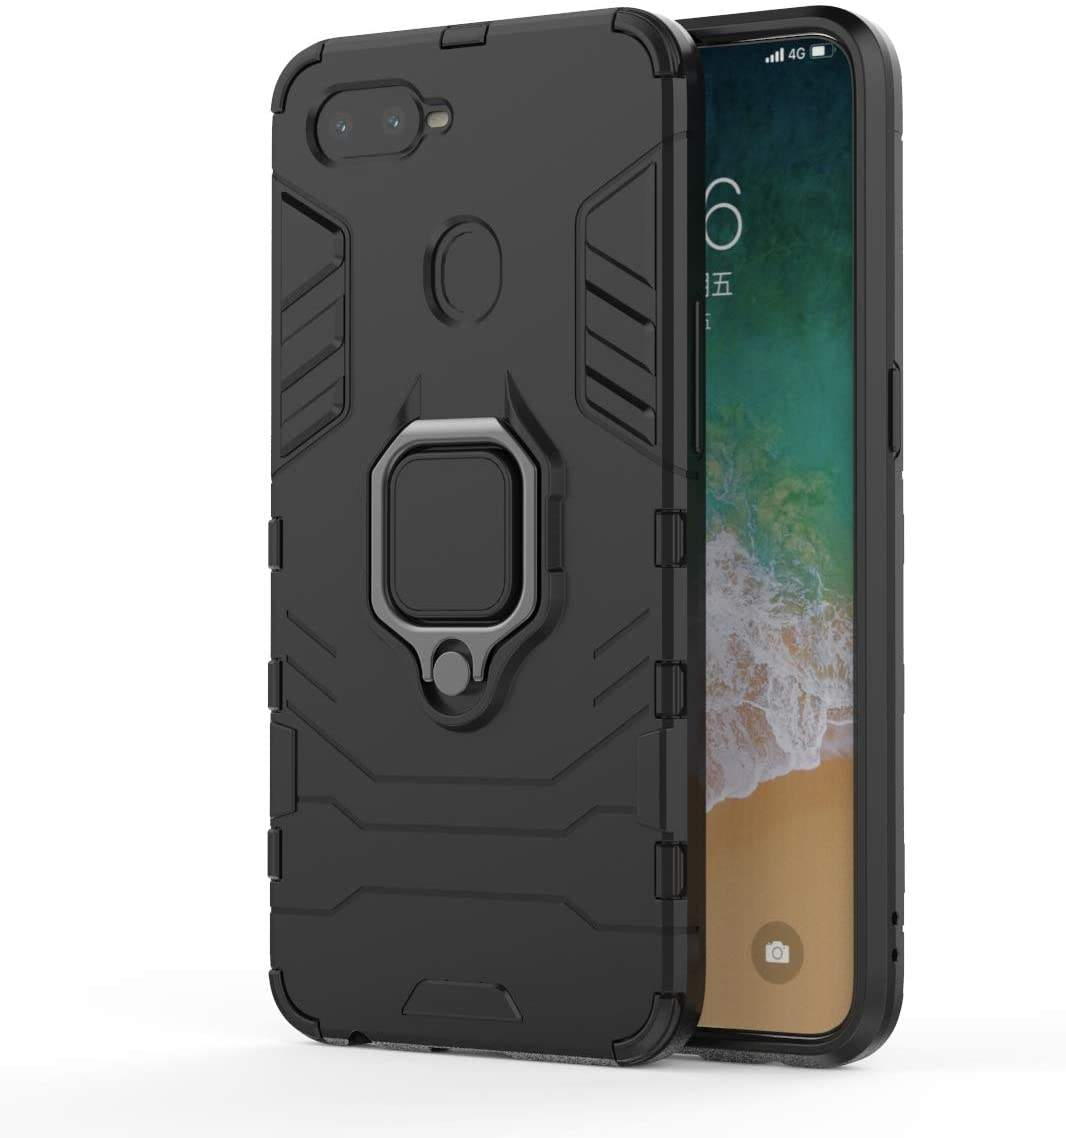 Voor Oppo A5 Black Panther <span class=keywords><strong>Telefoon</strong></span> Case Hybrid Hard Shell Pc & Soft Tpu Beschermhoes Met Magnetische Auto Mount